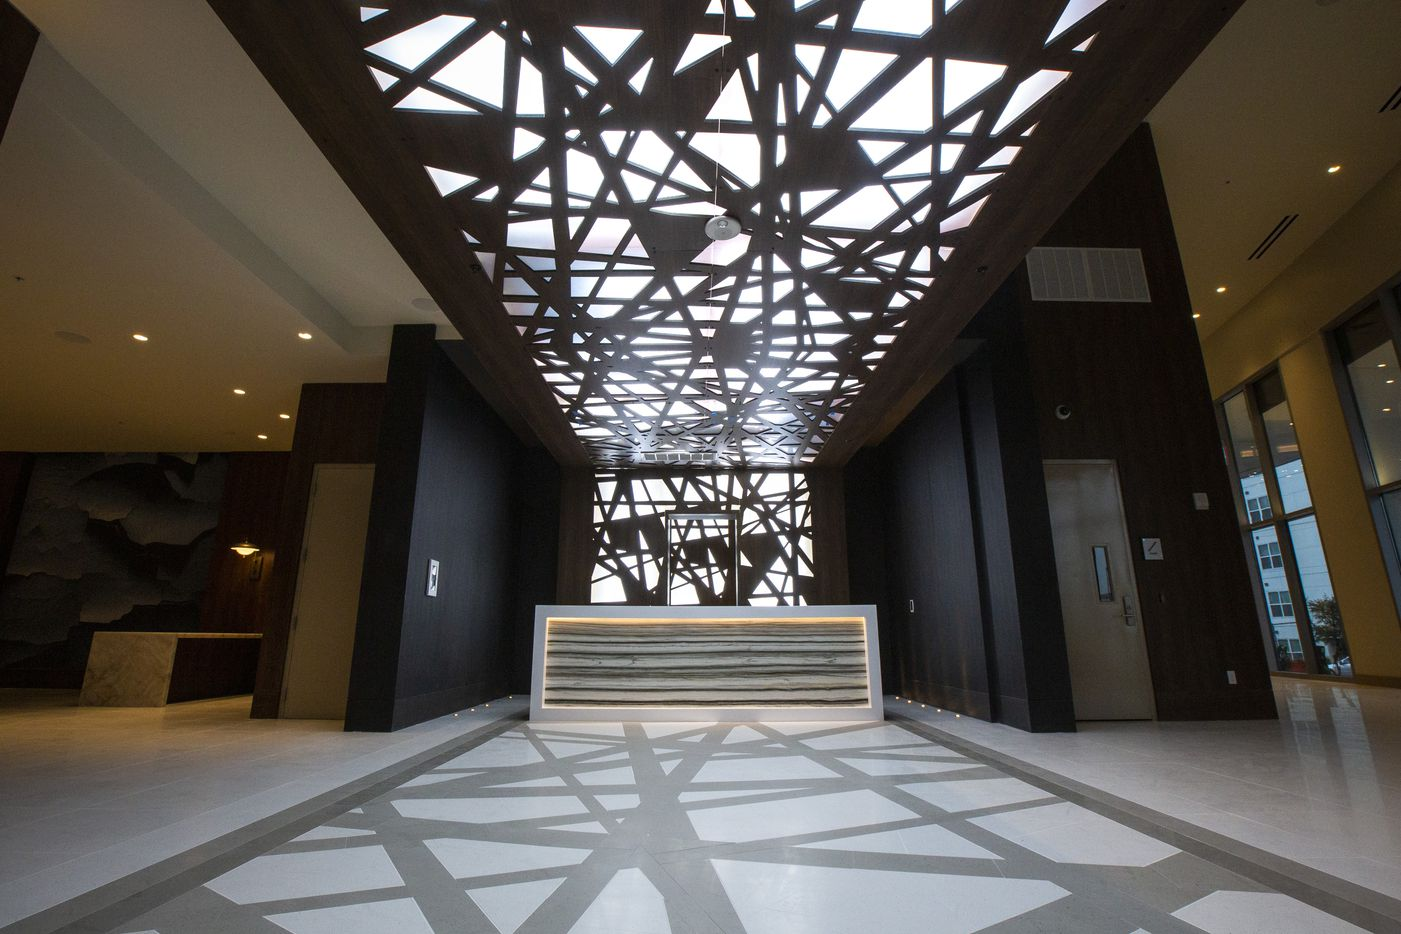 The concierge area at the new LVL 29 apartment high-rise in Plano. (Lynda M. Gonzalez/The Dallas Morning News)